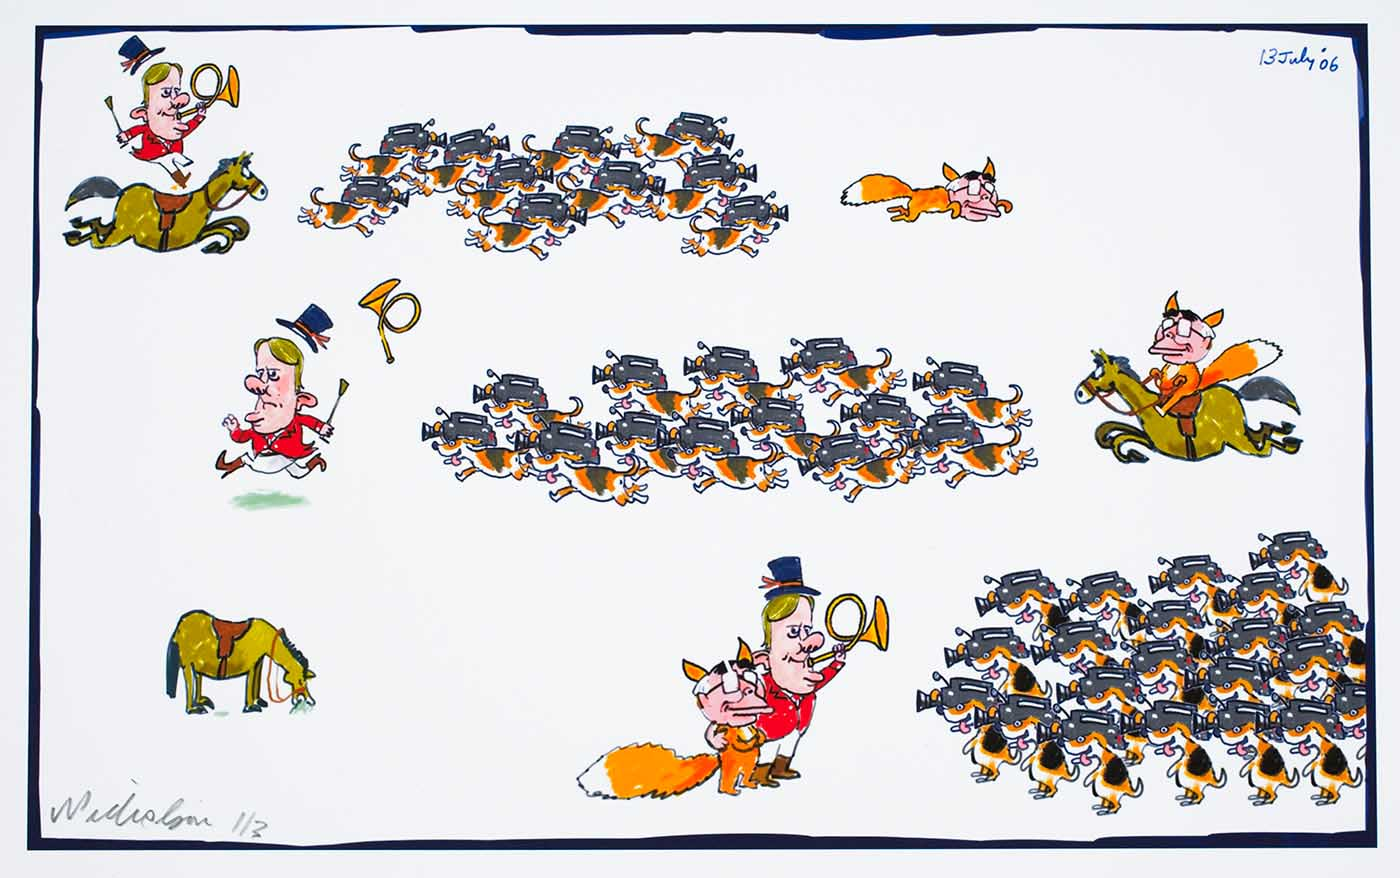 Cartoon showing a fox hunt, with Peter Costello as a rider, John Howard as the fox and the media as dogs. First Costello chases Howard, then Howard chases Costello, then at the end they are arm in arm - click to view larger image